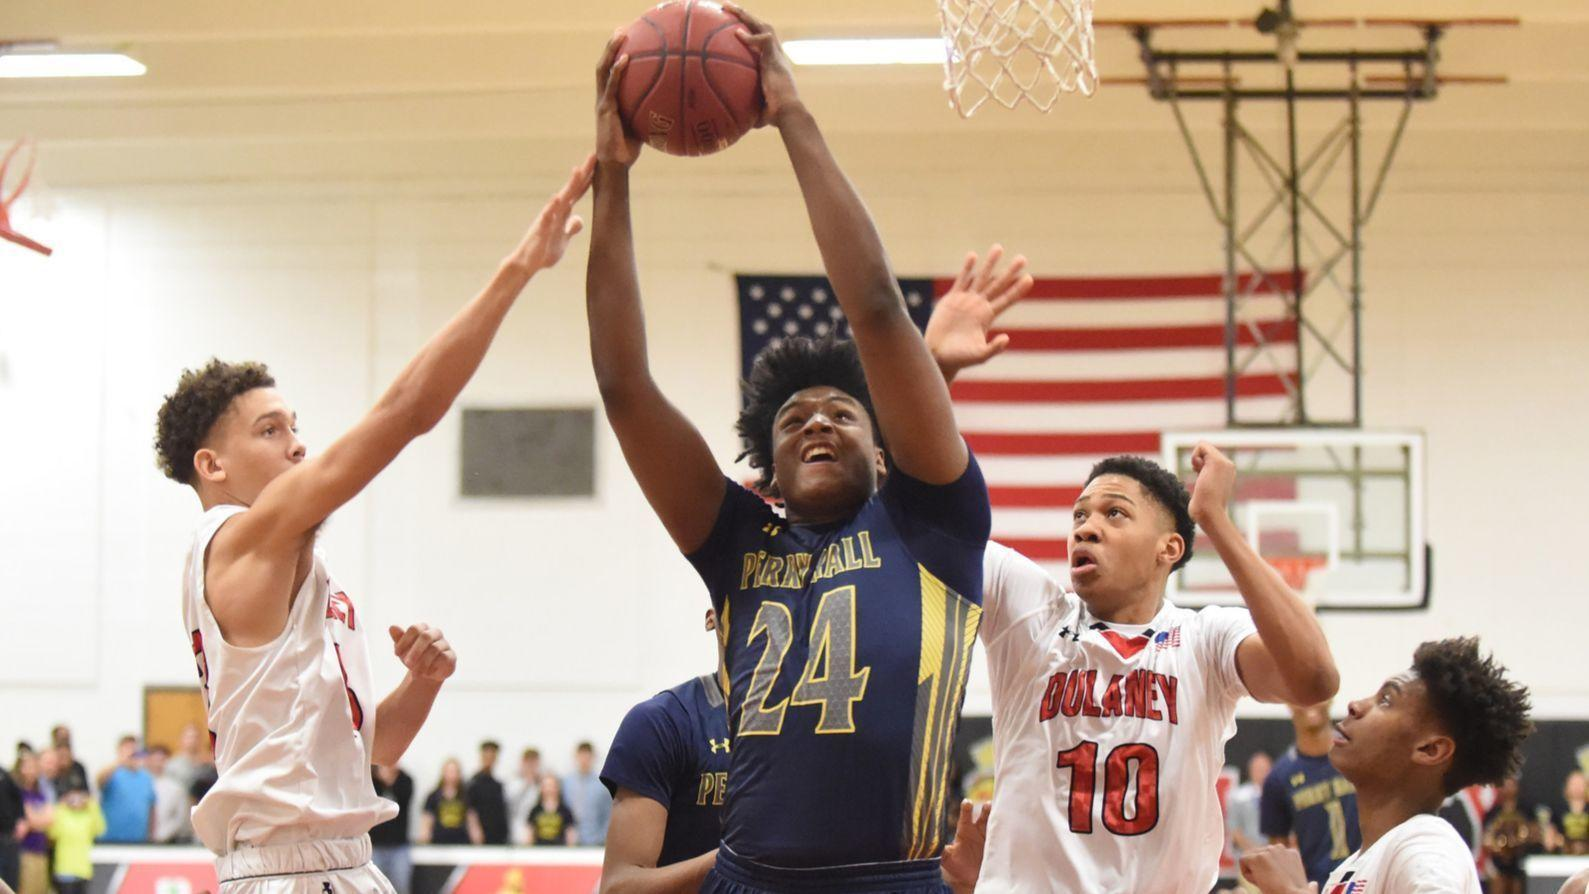 After reopening recruitment, Perry Hall forward Anthony Higgs commits to Illinois